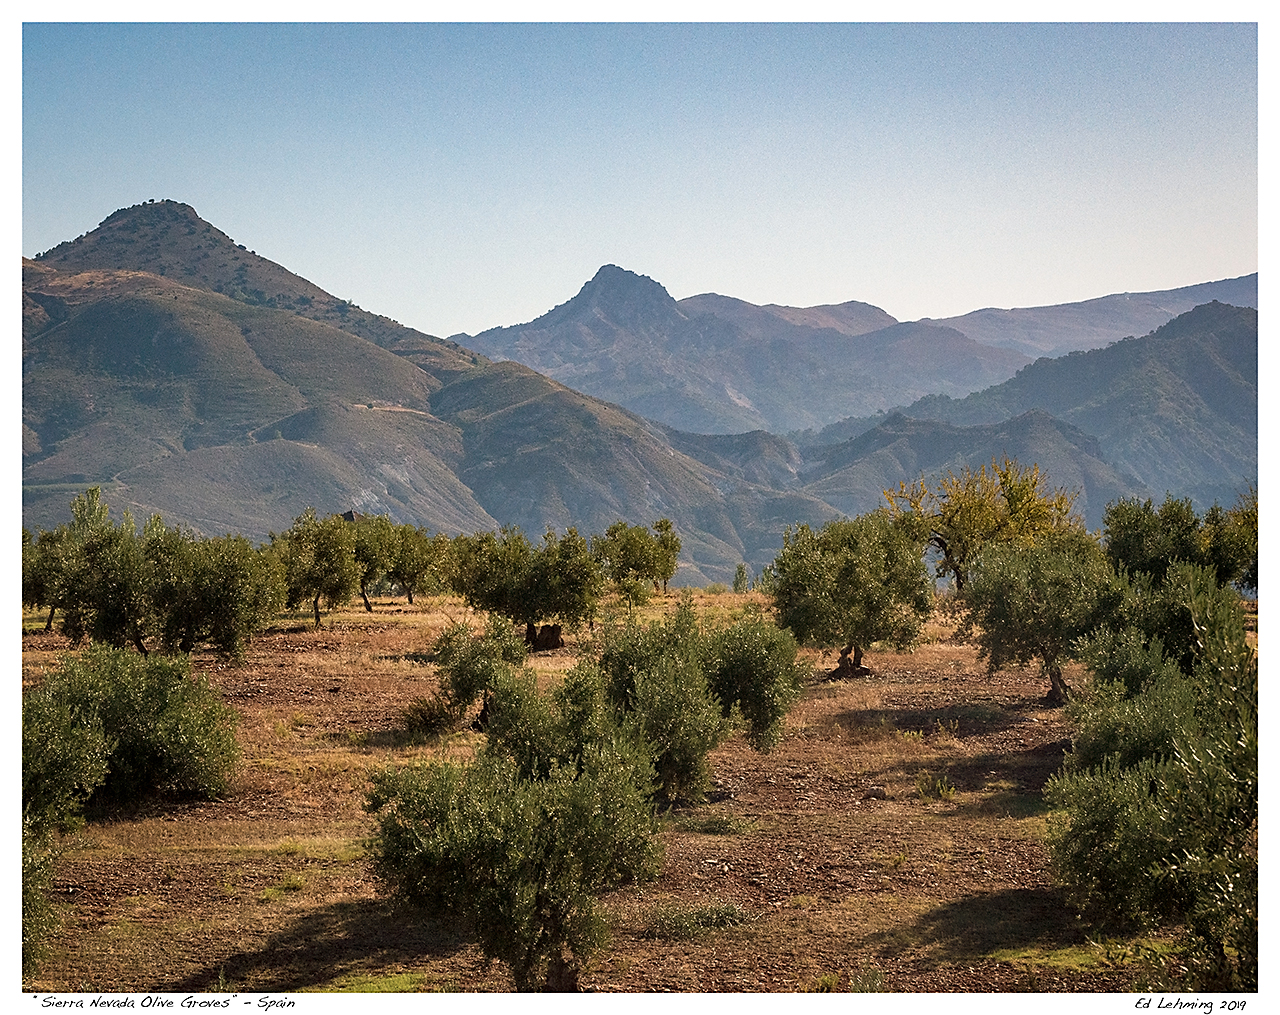 """Sierra Nevada Olive Groves"" - Spain"